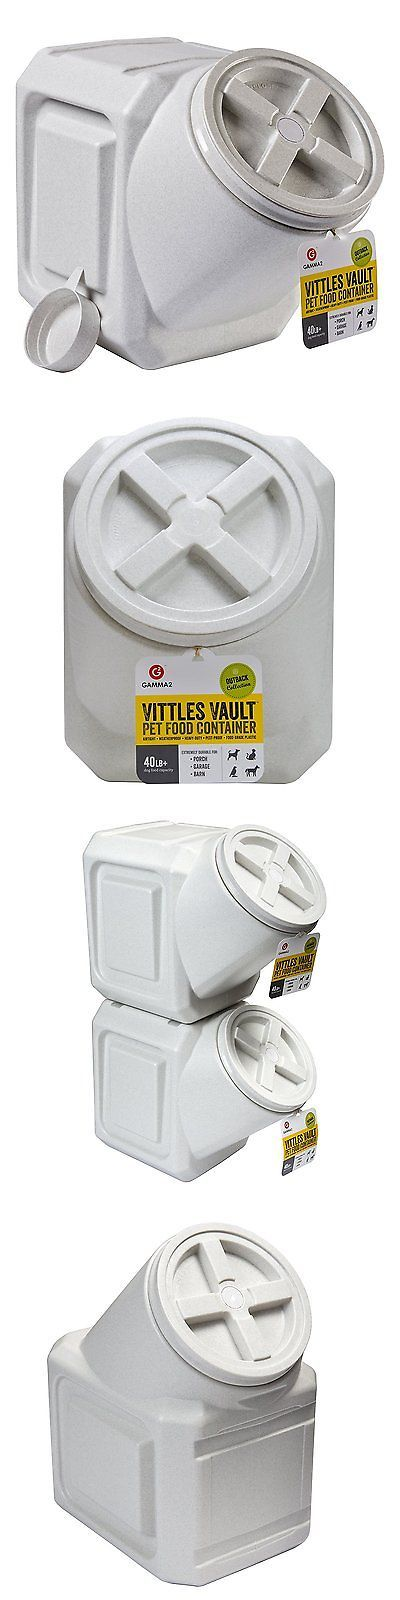 Dishes Feeders and Fountains 177789: Outback Stackable 40 Lb Airtight Seal Pet Food Storage Container Keeps Fresh New -> BUY IT NOW ONLY: $30.35 on eBay!